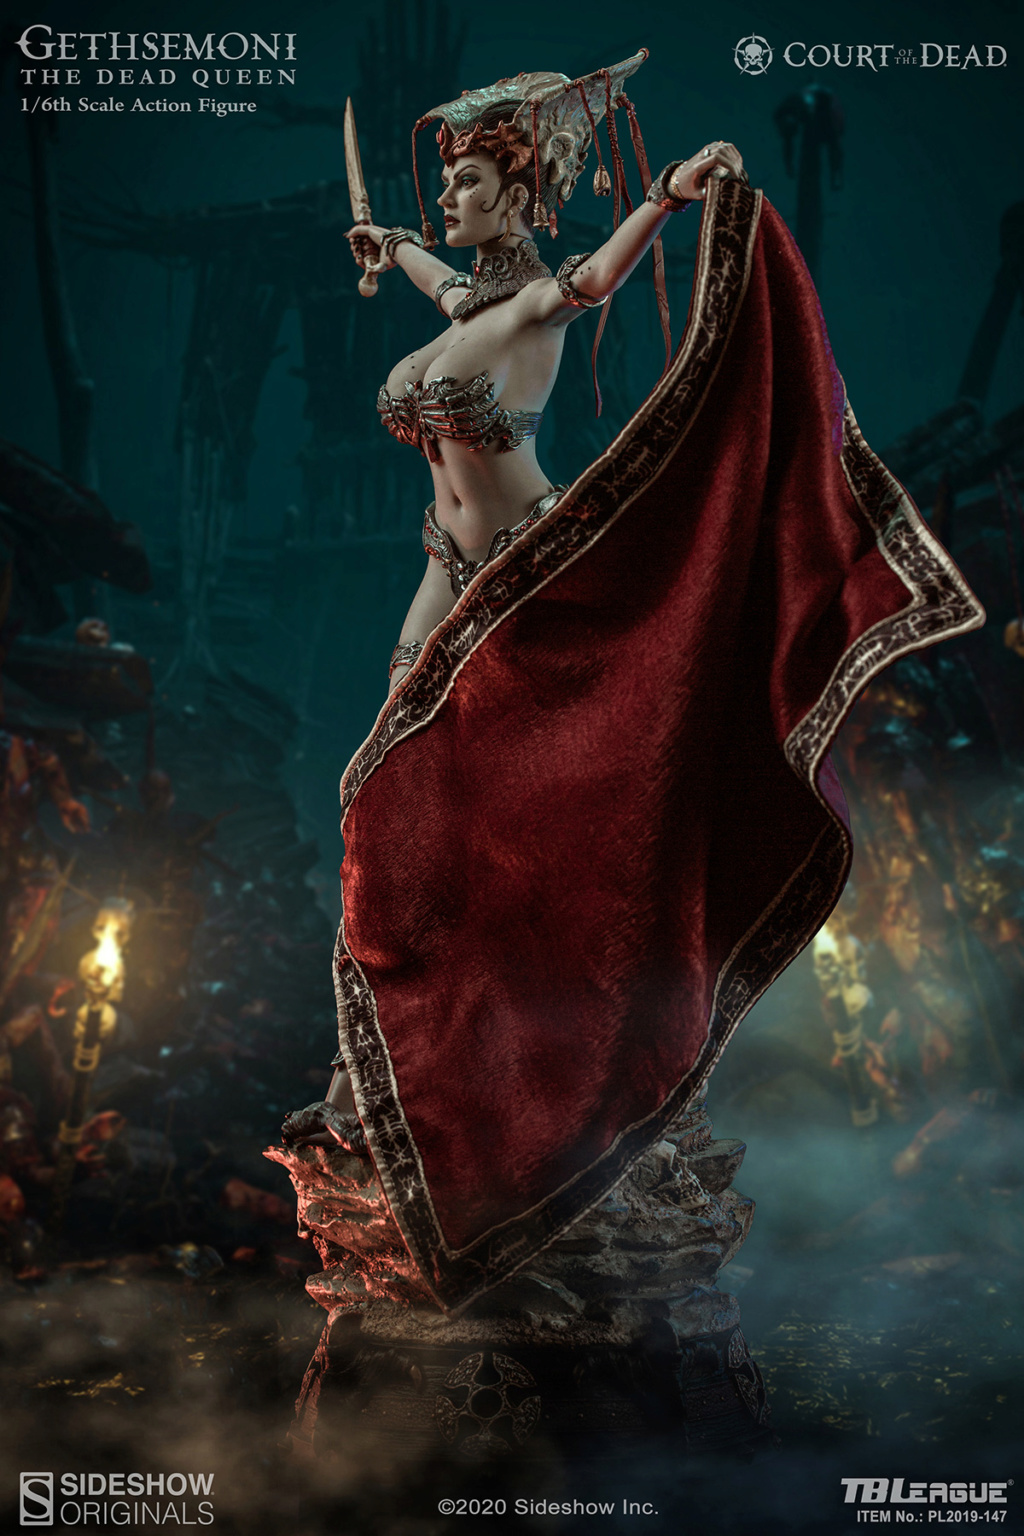 sideshow - NEW PRODUCT: Tbleague x SIDESHOW New: 1/6 Court of the Dead: Gethsemoni The Dead Queen action figure (PL2019-147) 16515910